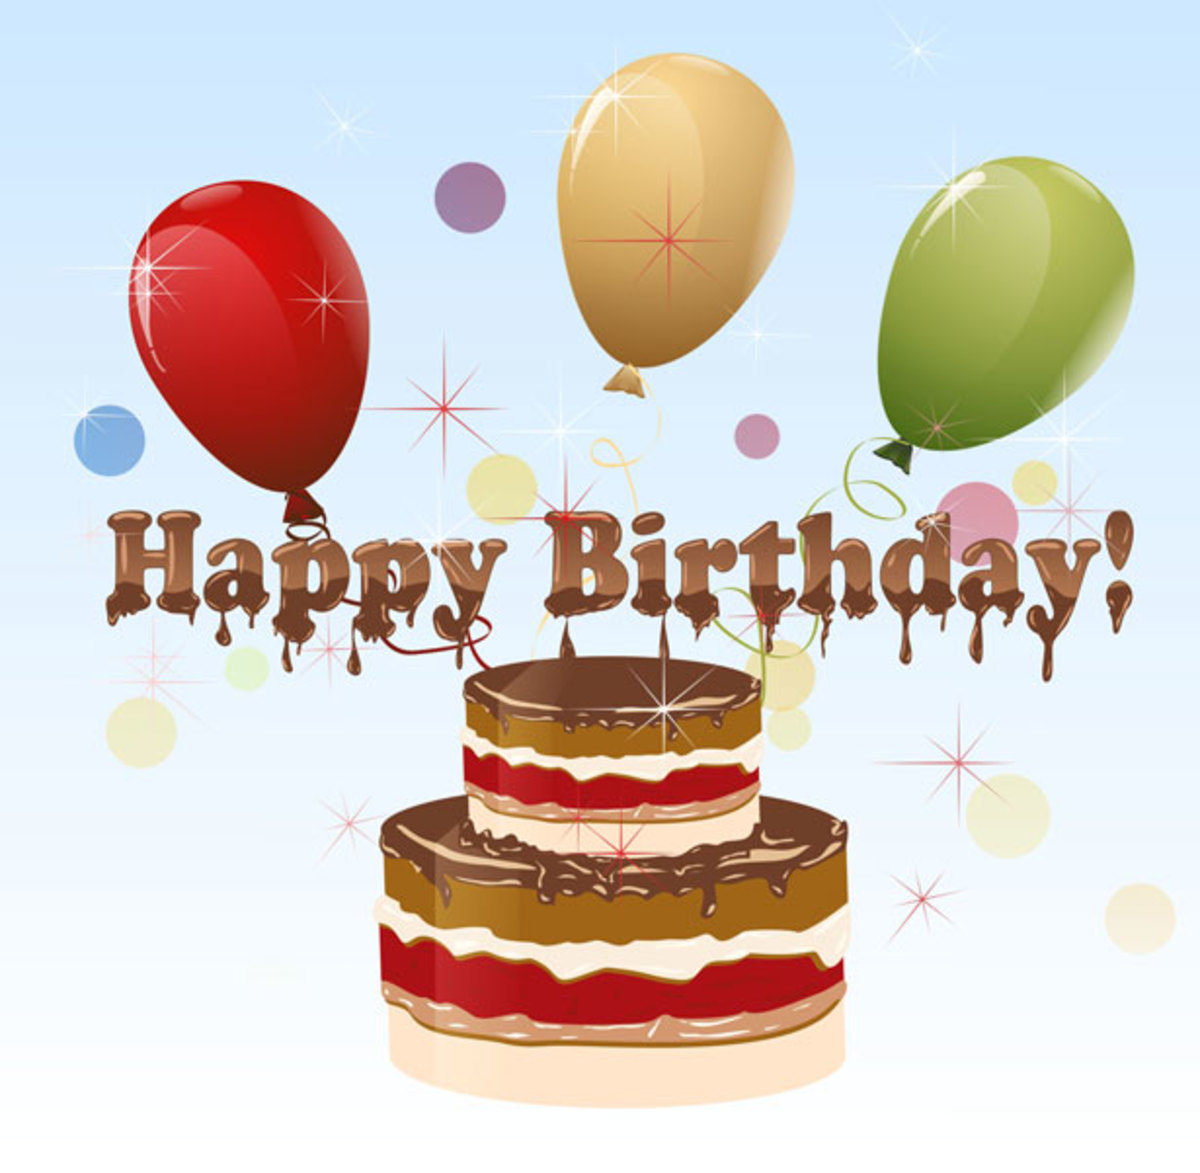 Chocolate Birthday Cake with Balloons Clip Art